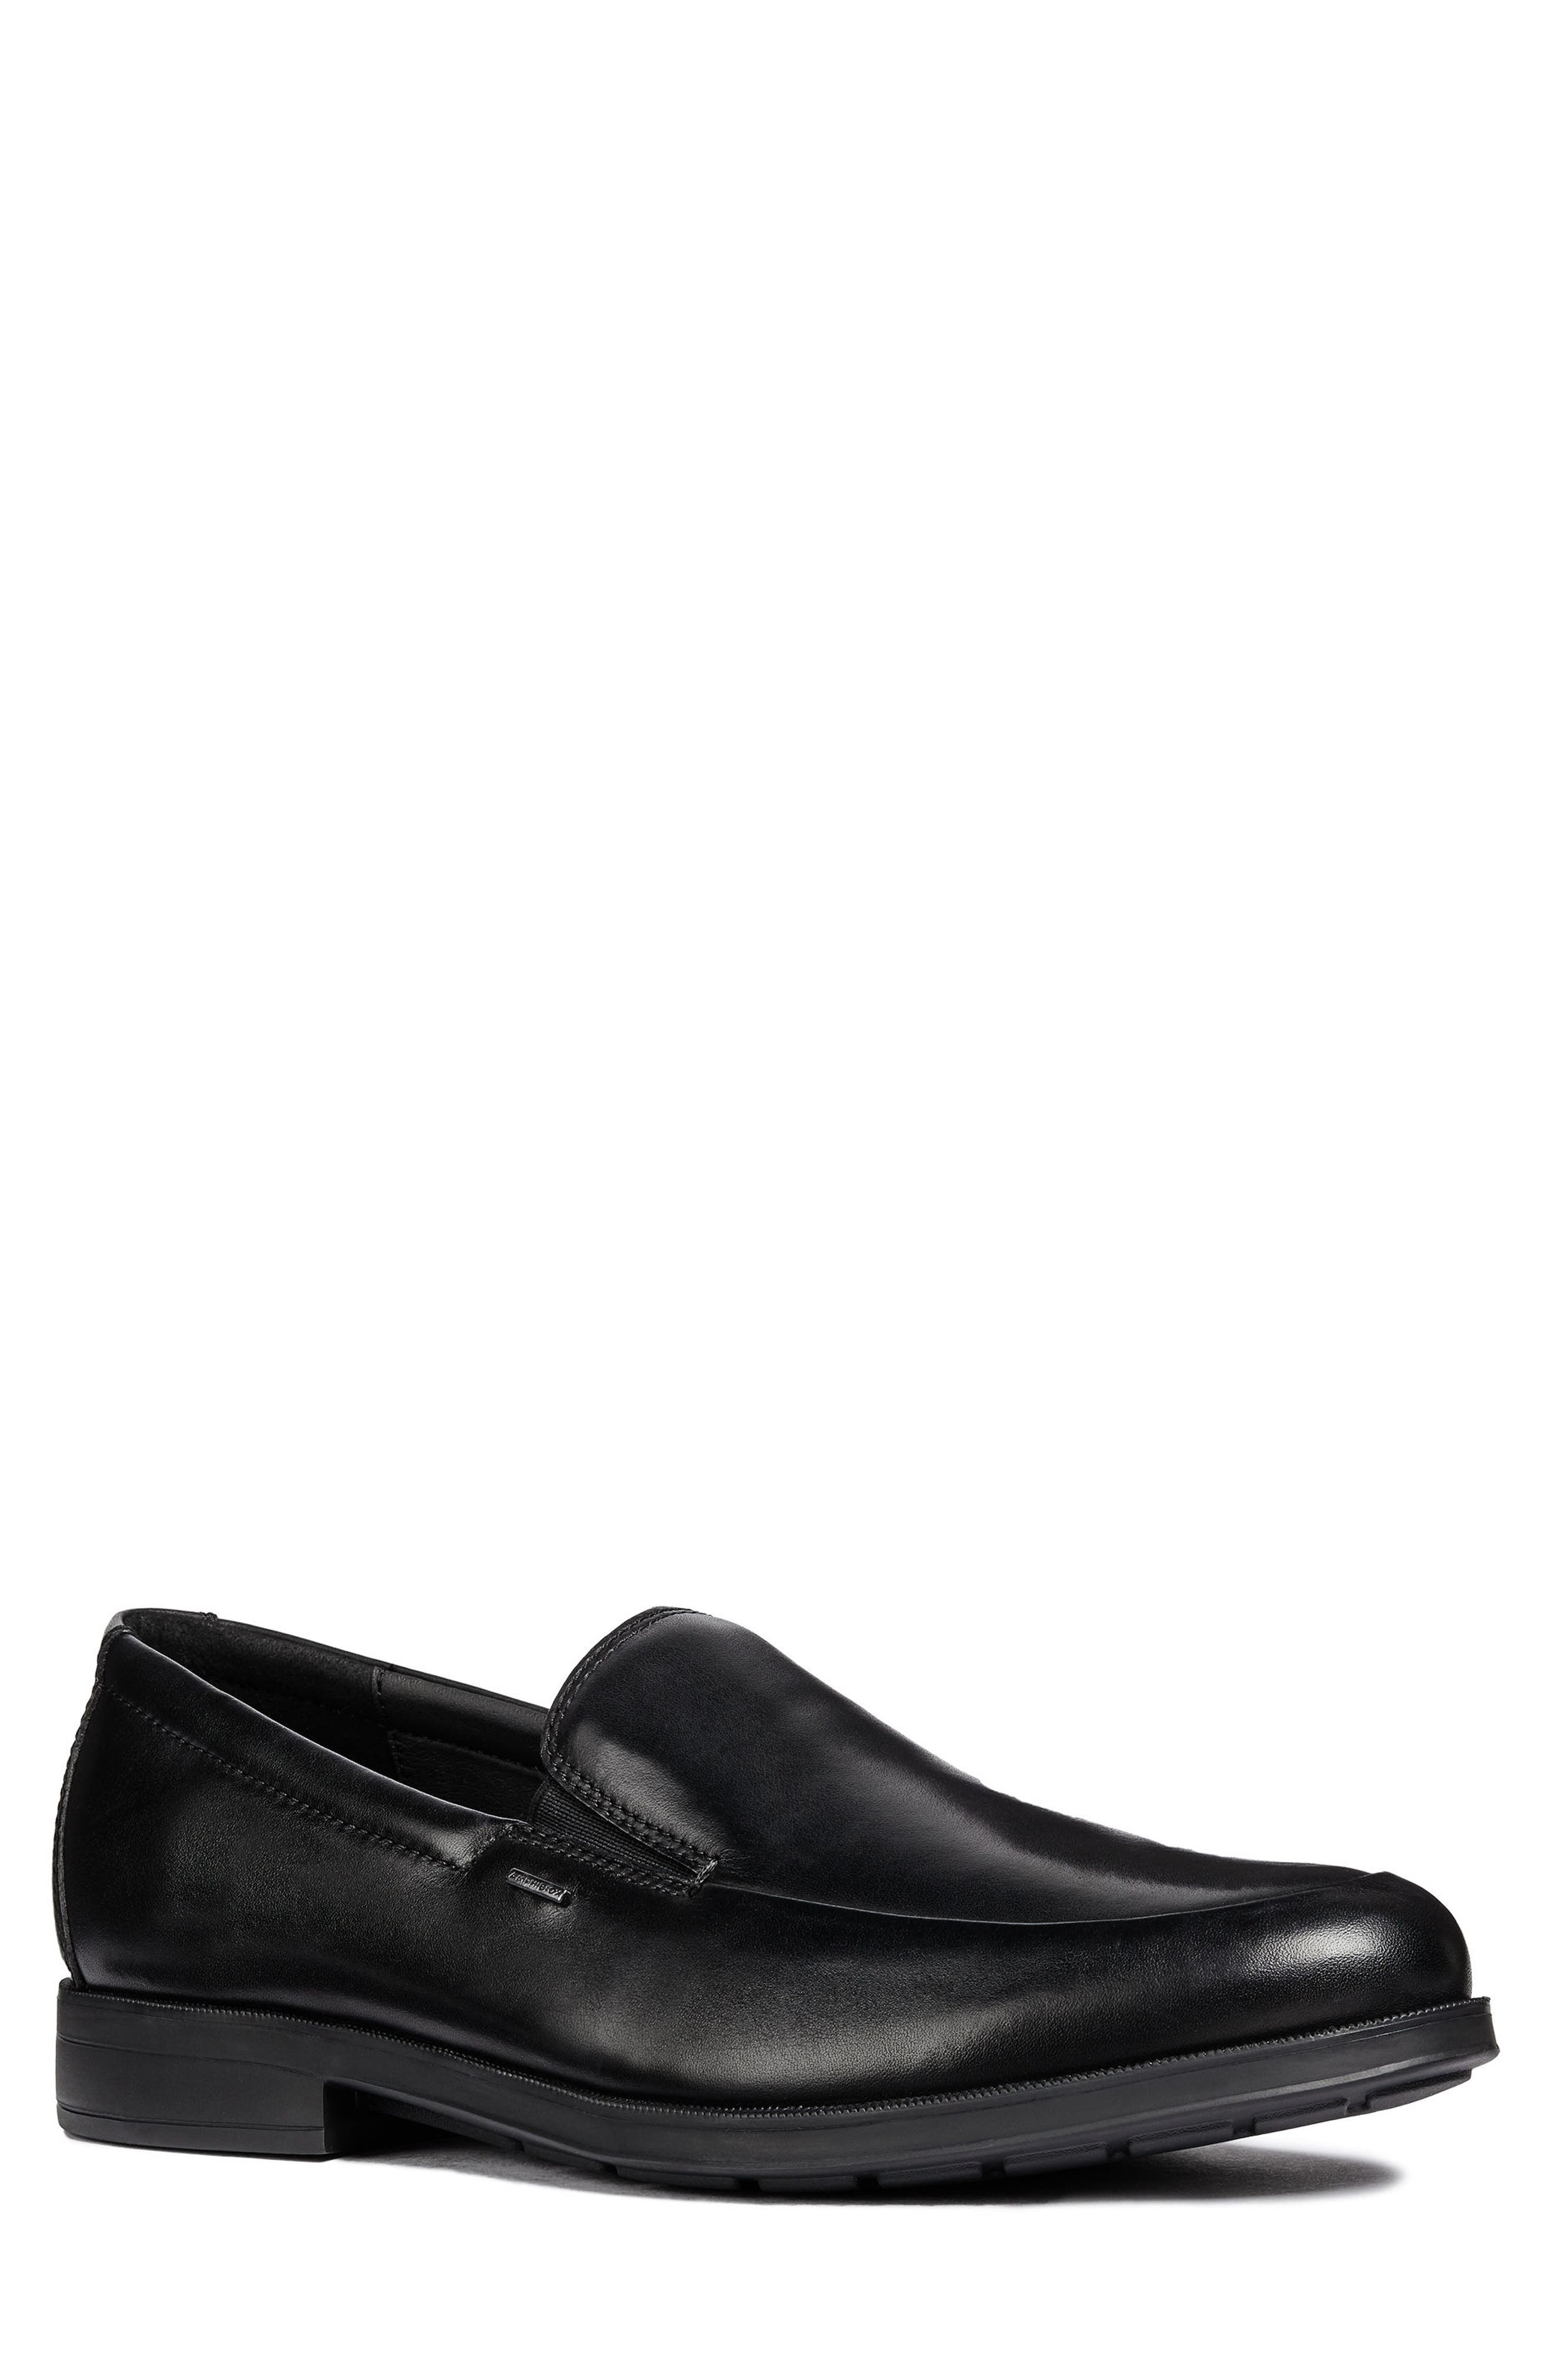 GEOX, Hilstone ABX 2 Loafer, Main thumbnail 1, color, 001